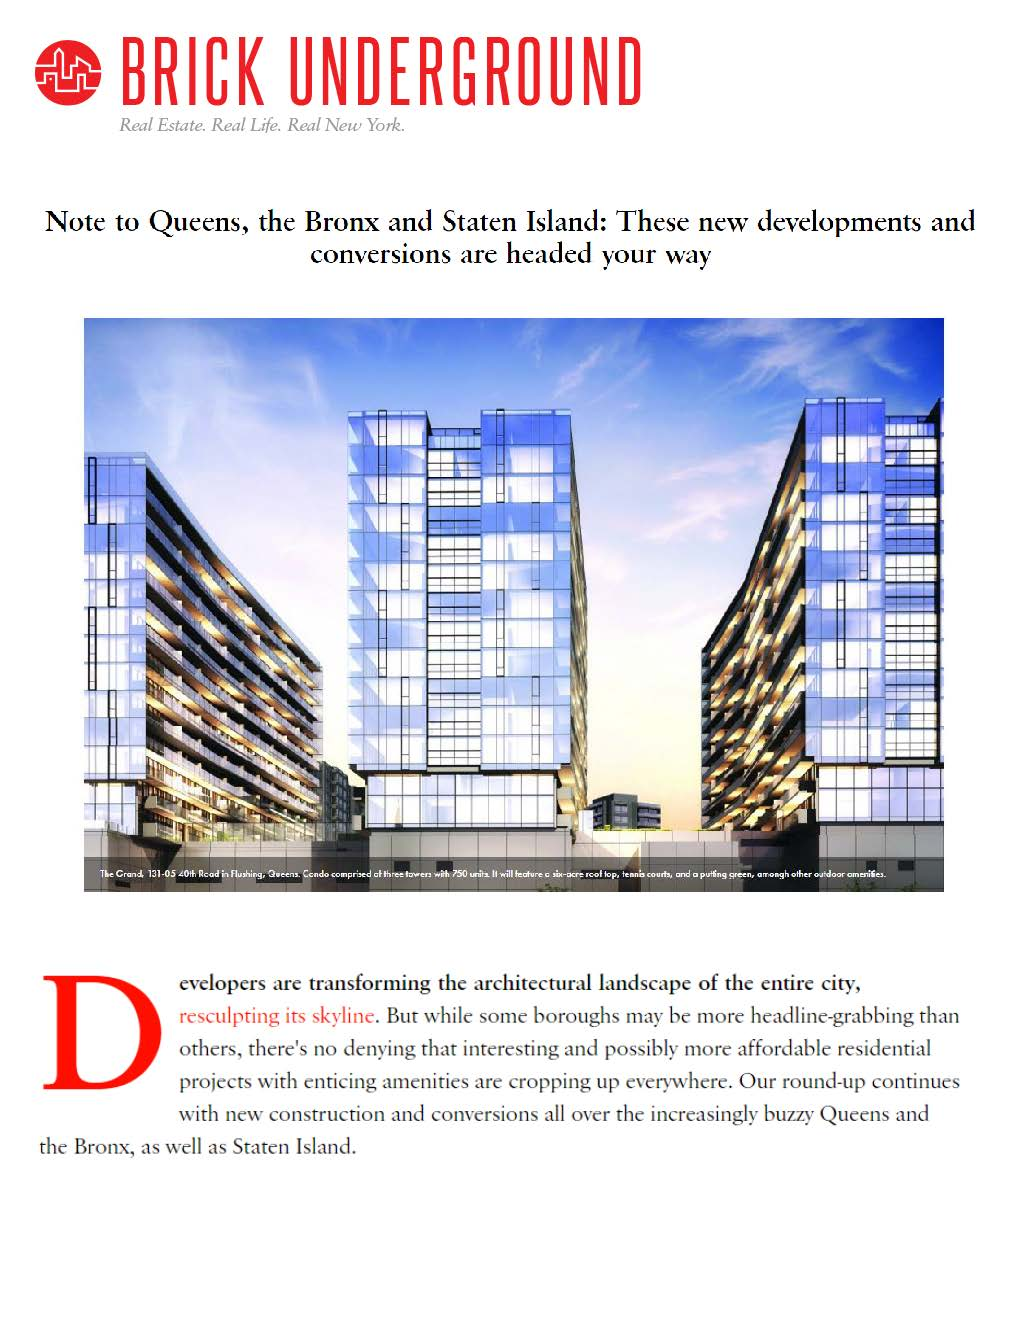 Brick Underground - Note to Queens, the Bronx and Staten Island, These new developments and conversions are headed your way - 04.01.16 (1)_Page_1